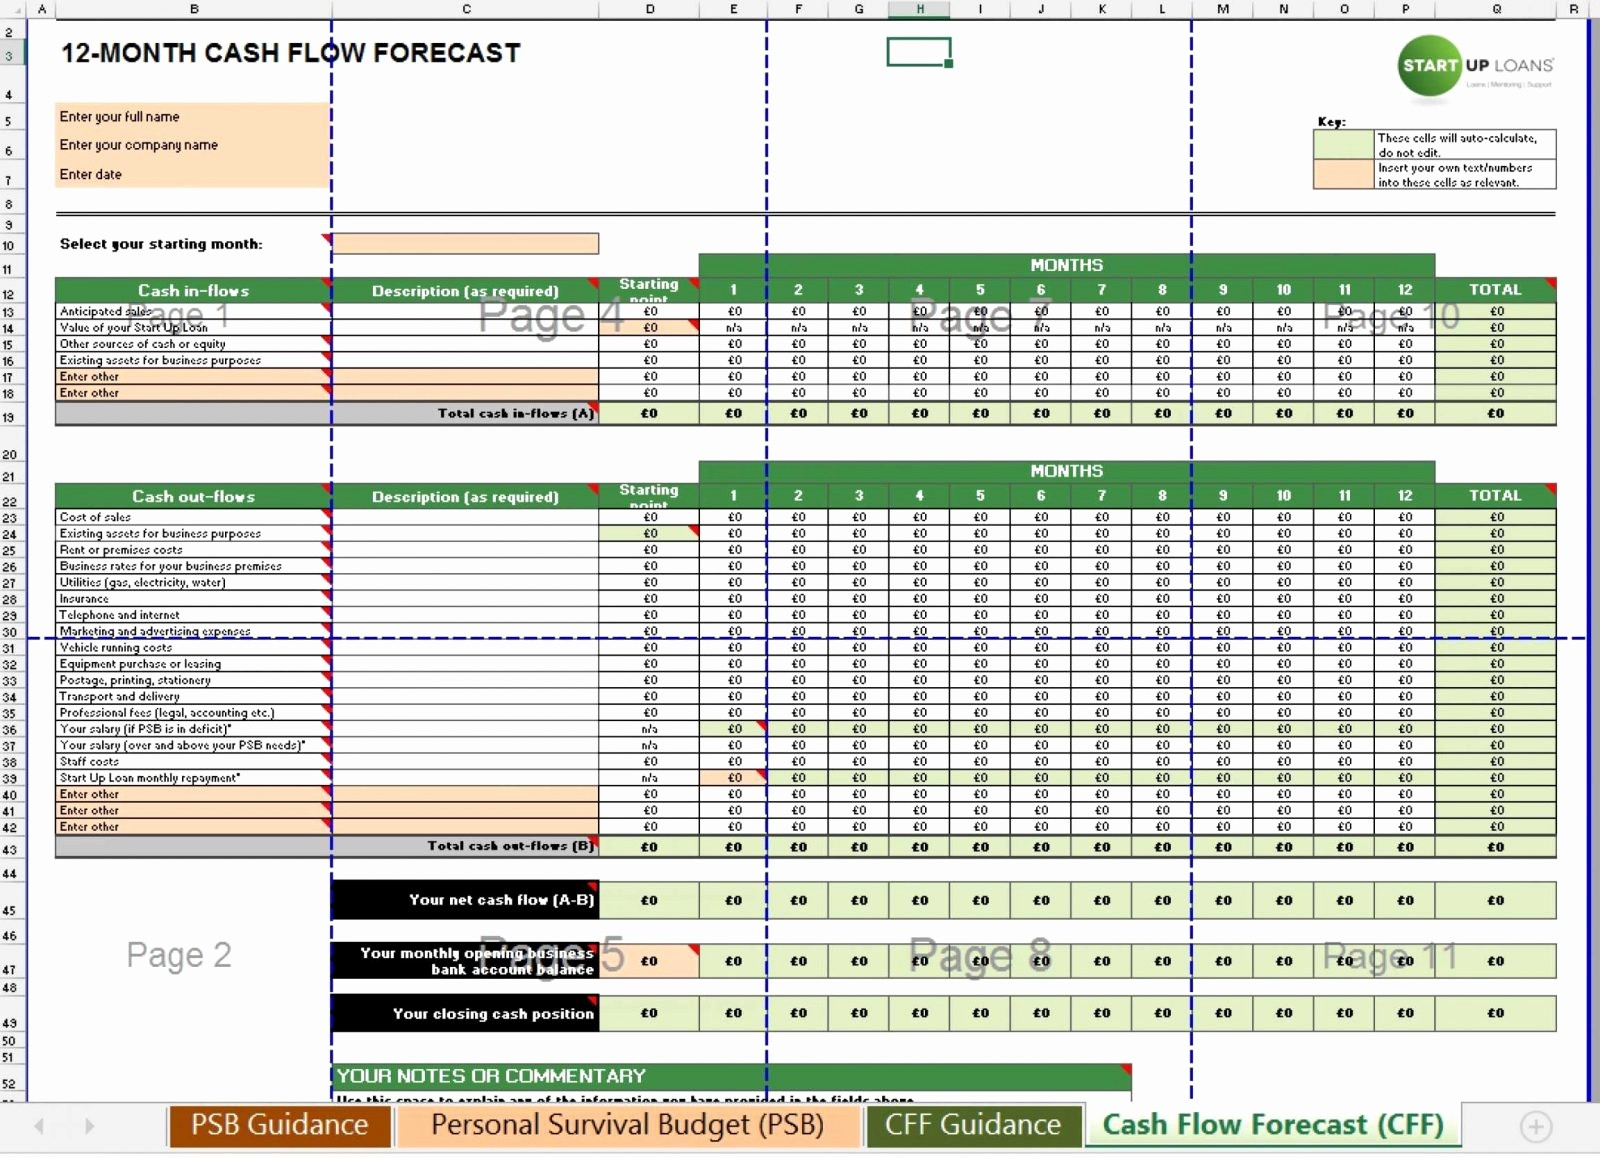 Weekly Cash Flow Projection Template Elegant Weekly Cash Flow forecast Spreadsheet Spreadsheet Downloa